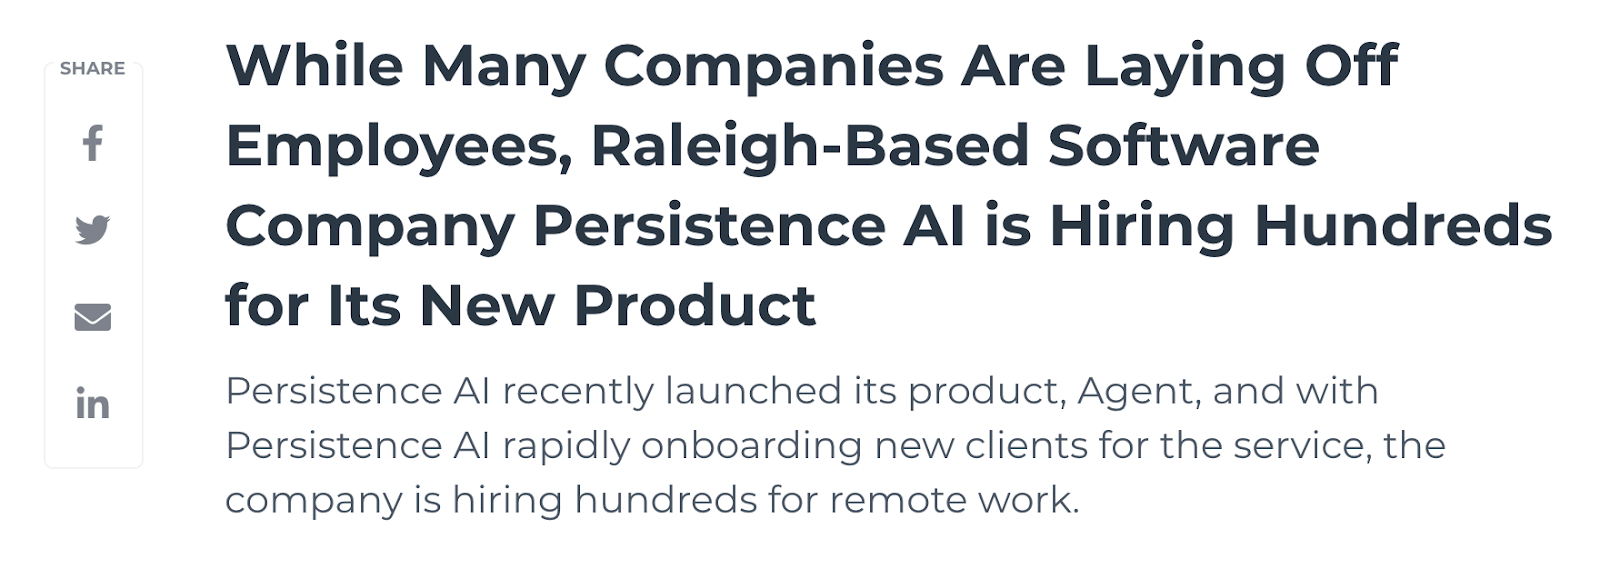 While many companies are laying off employees, Raleigh-based software company Persistence AI is hiring hundreds for its new product